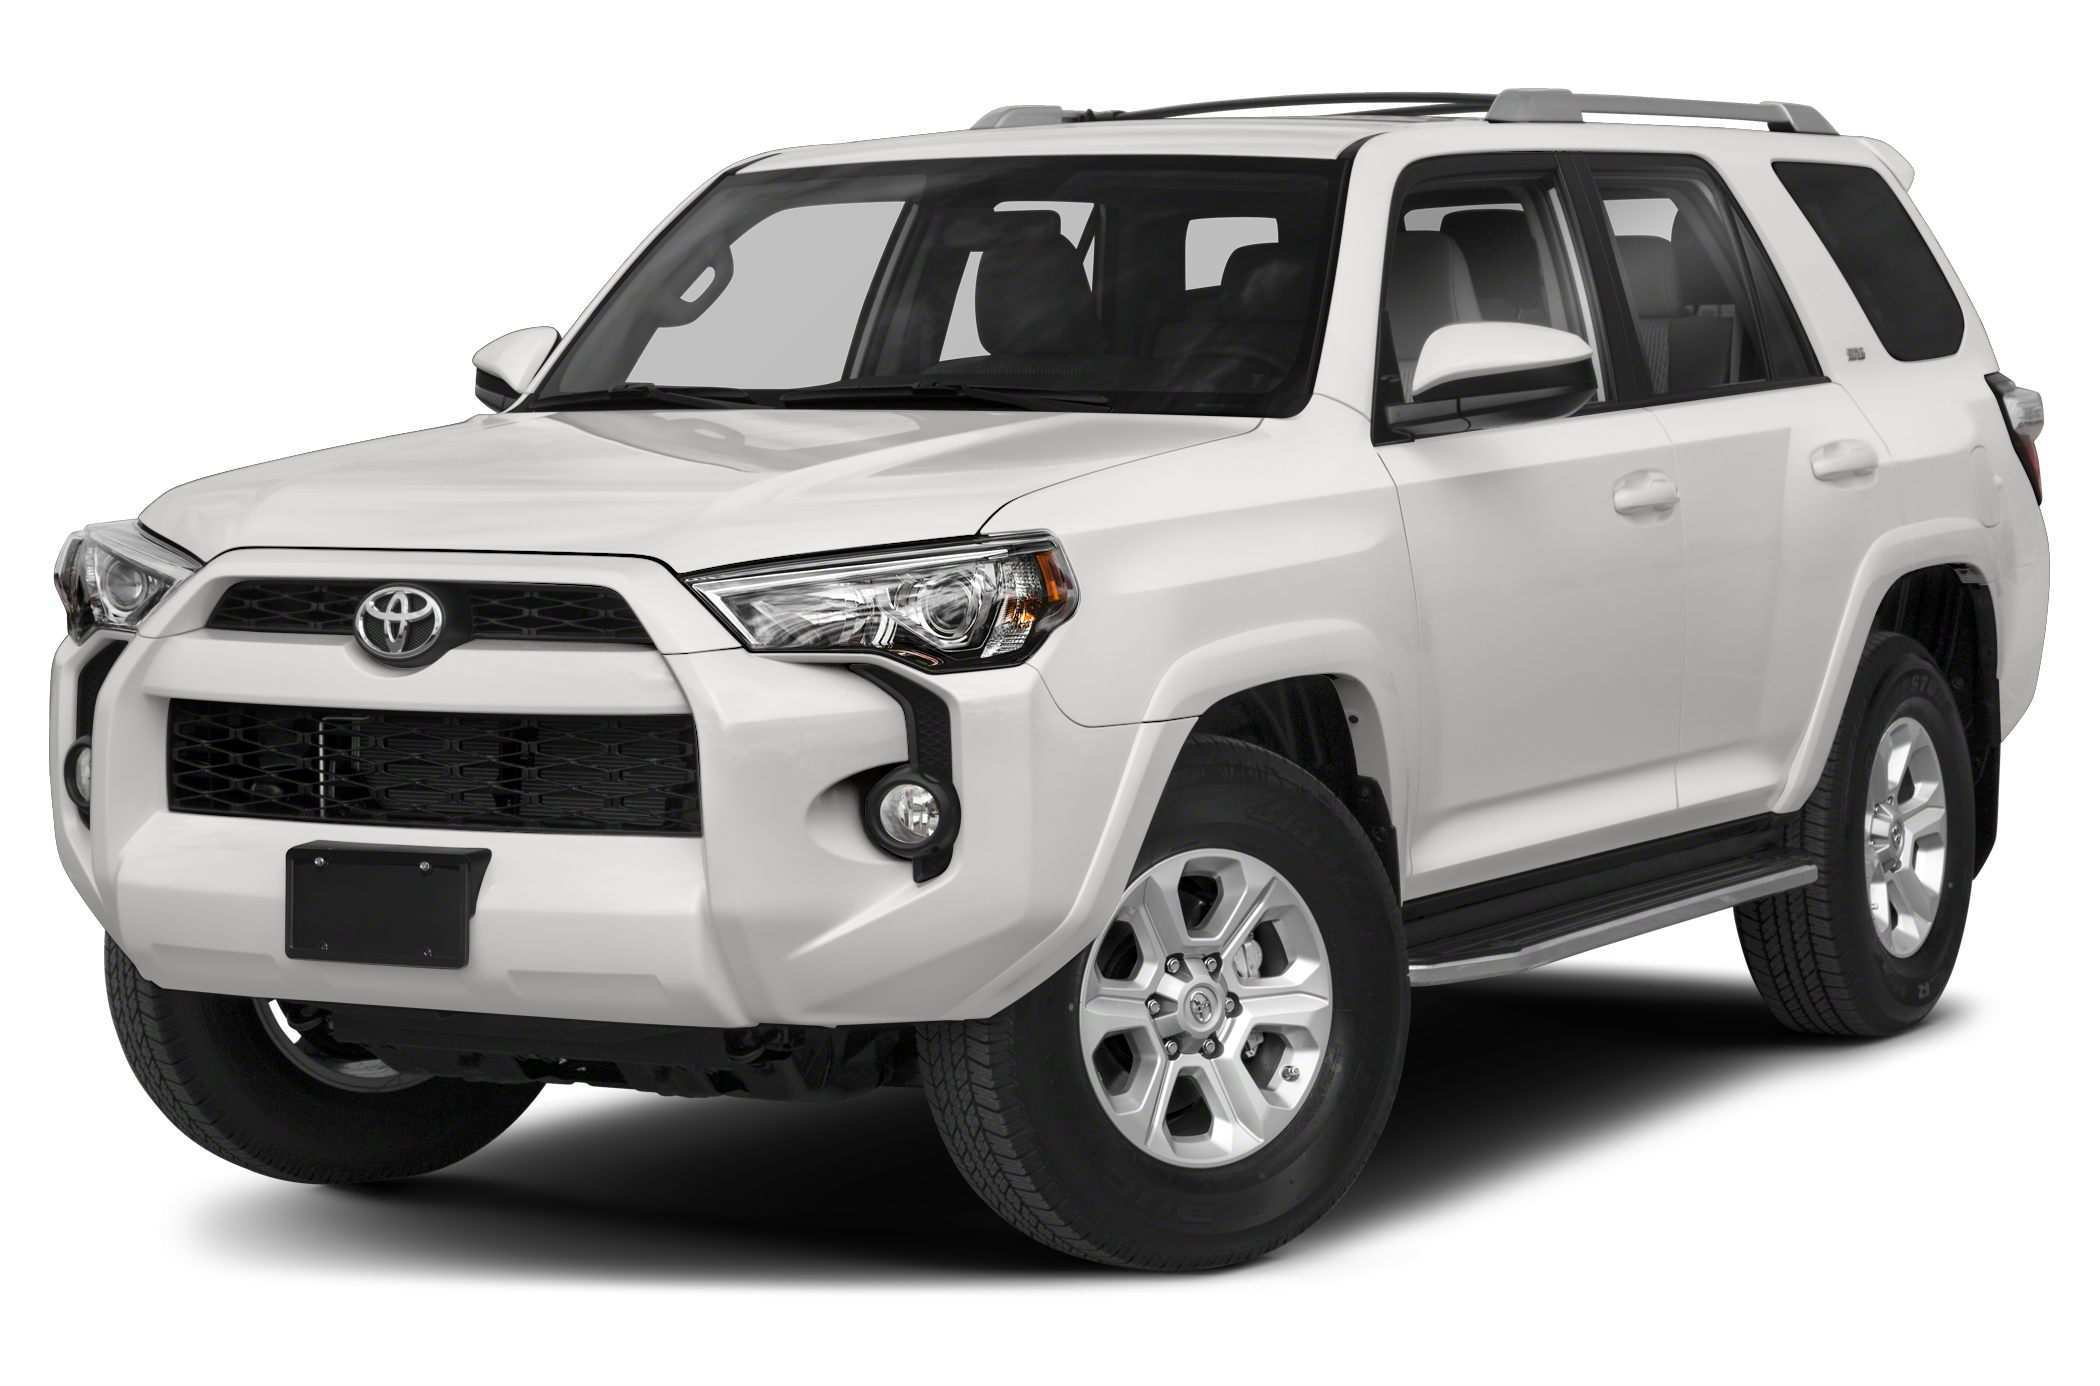 66 Best Review The 2019 Toyota 4Runner Limited Exterior Price and Review by The 2019 Toyota 4Runner Limited Exterior